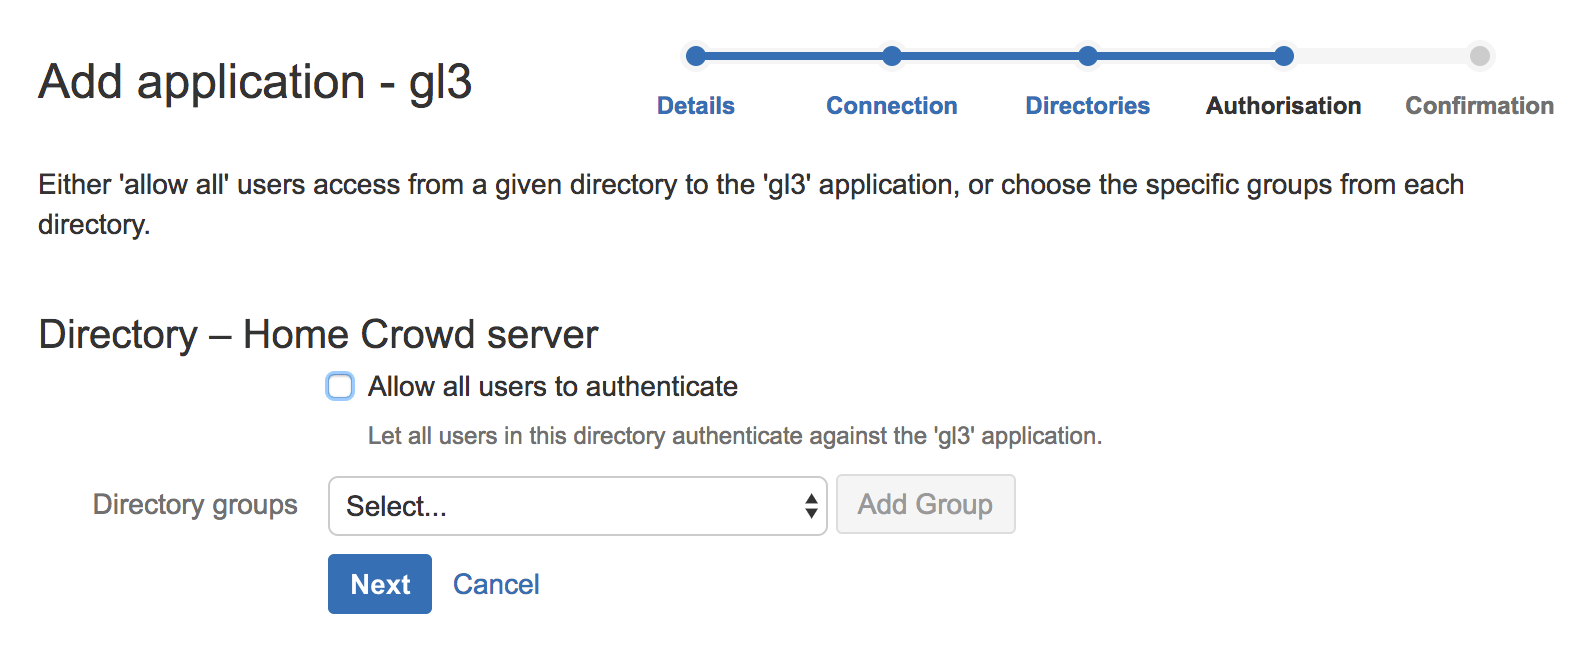 doc/administration/auth/img/crowd_application_authorisation.png